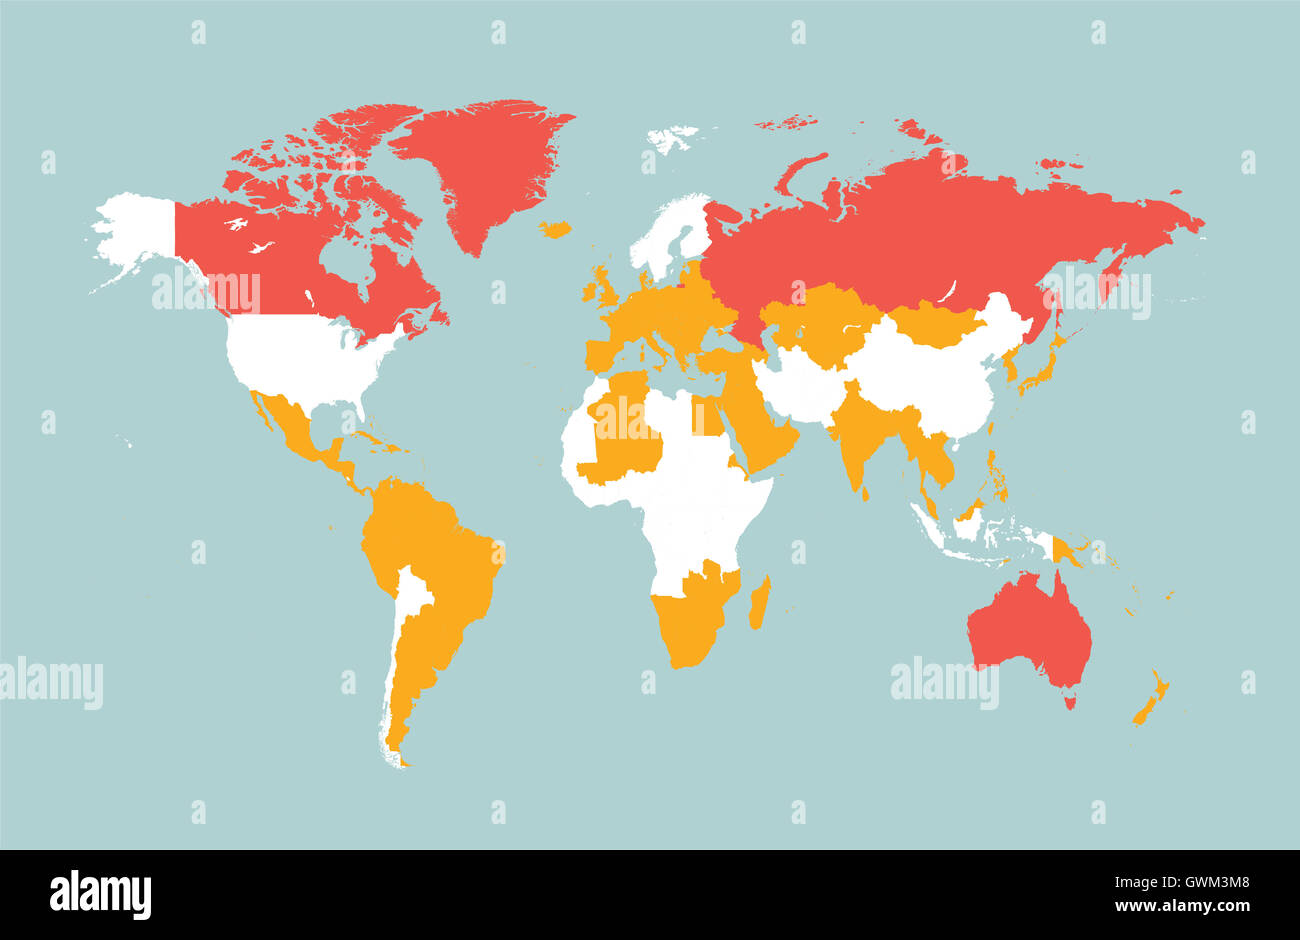 World map vector flat with countries blue stock photo 119070568 alamy world map vector flat with countries blue gumiabroncs Choice Image